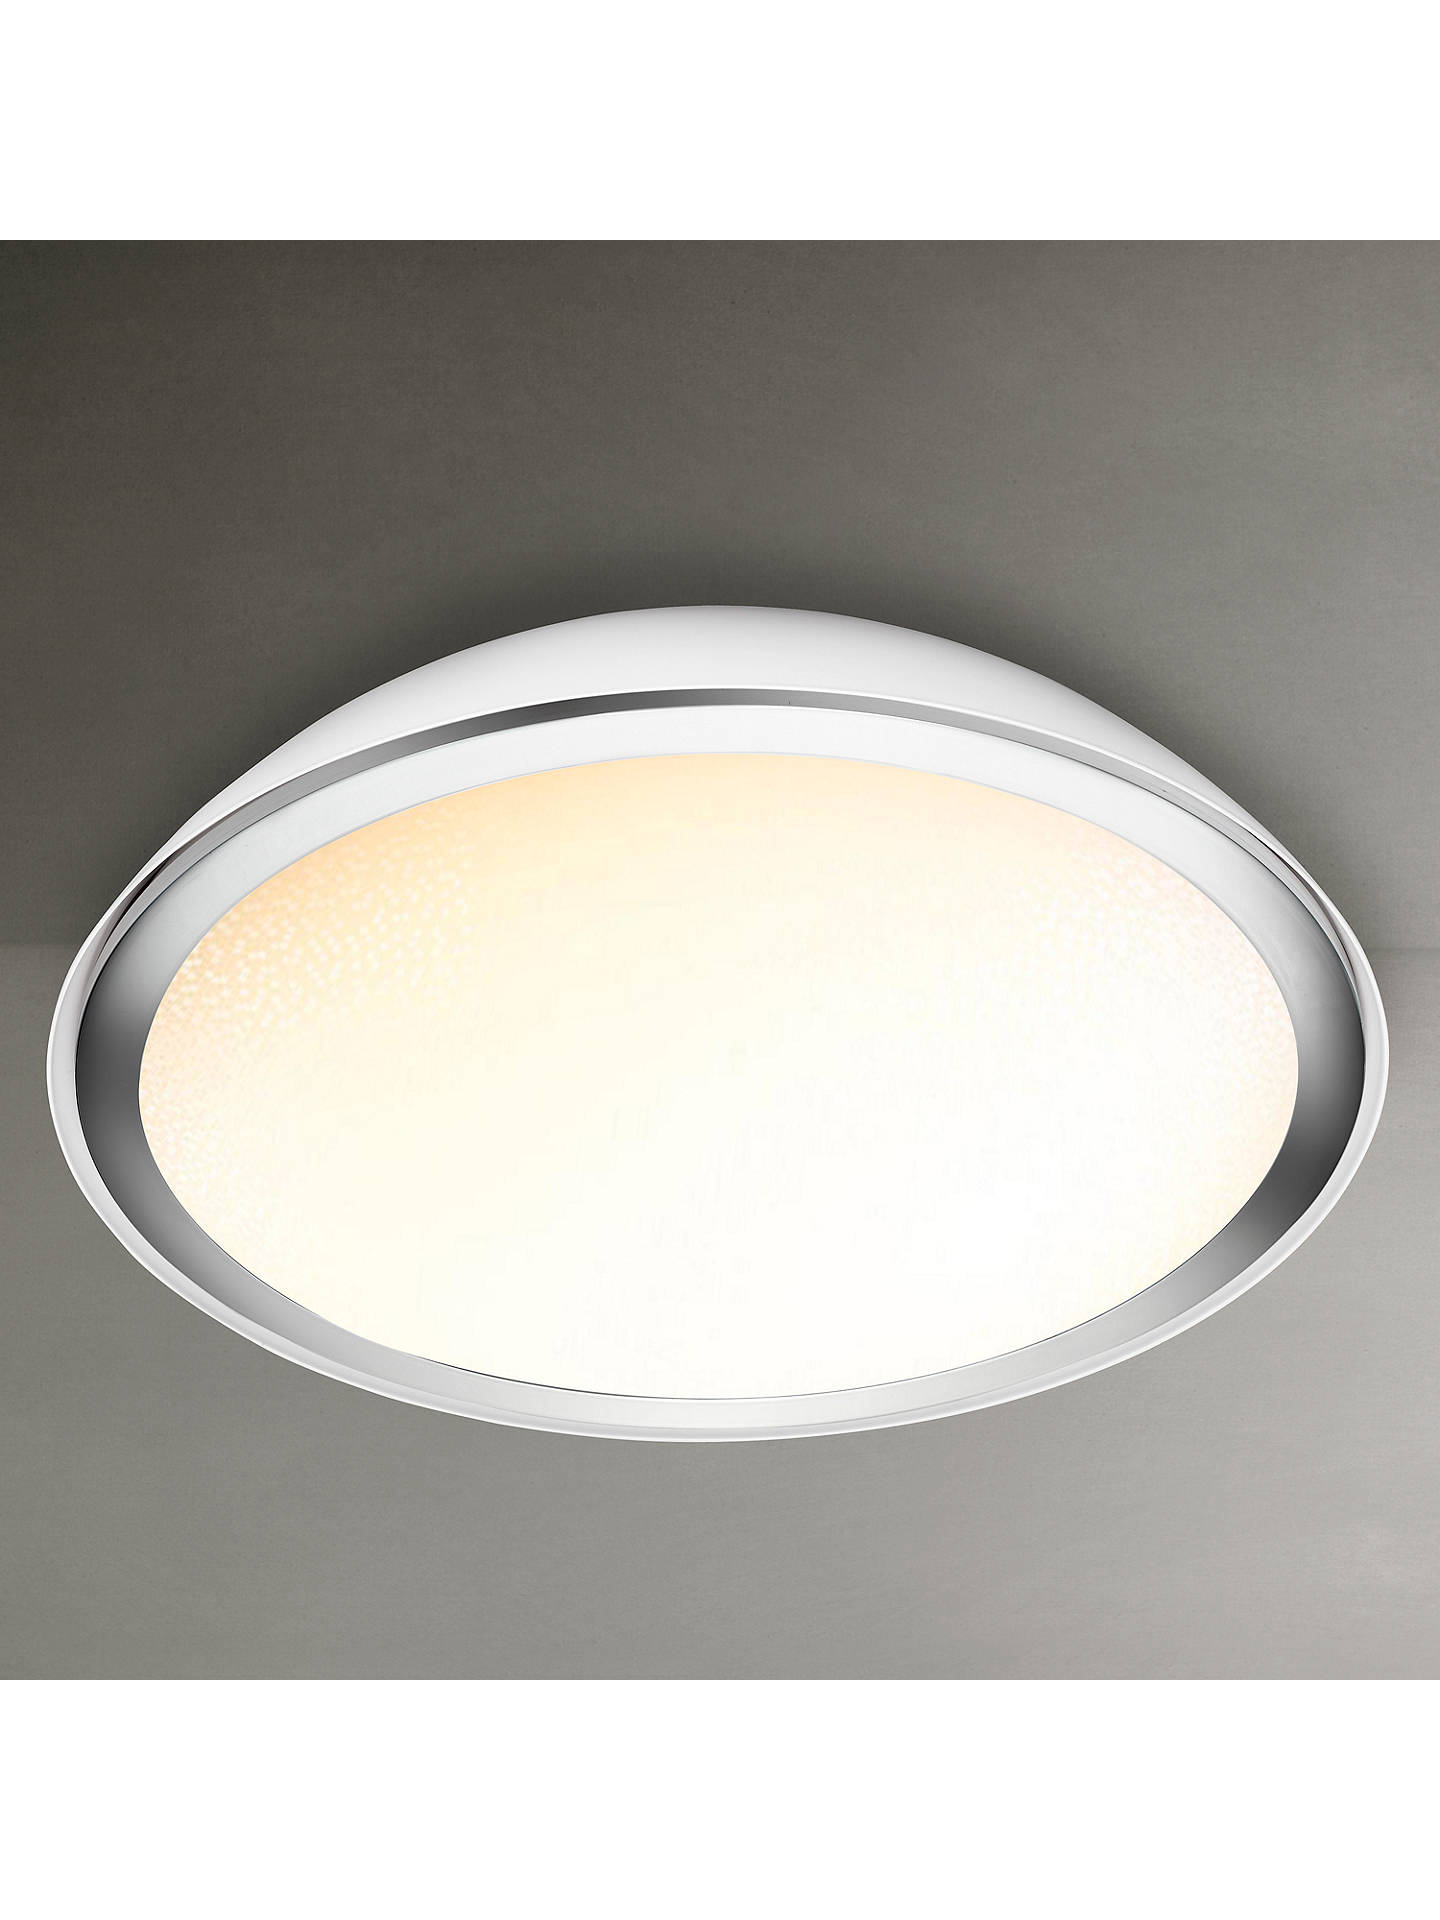 Philips Cool Led Bathroom Light At John Lewis Partners